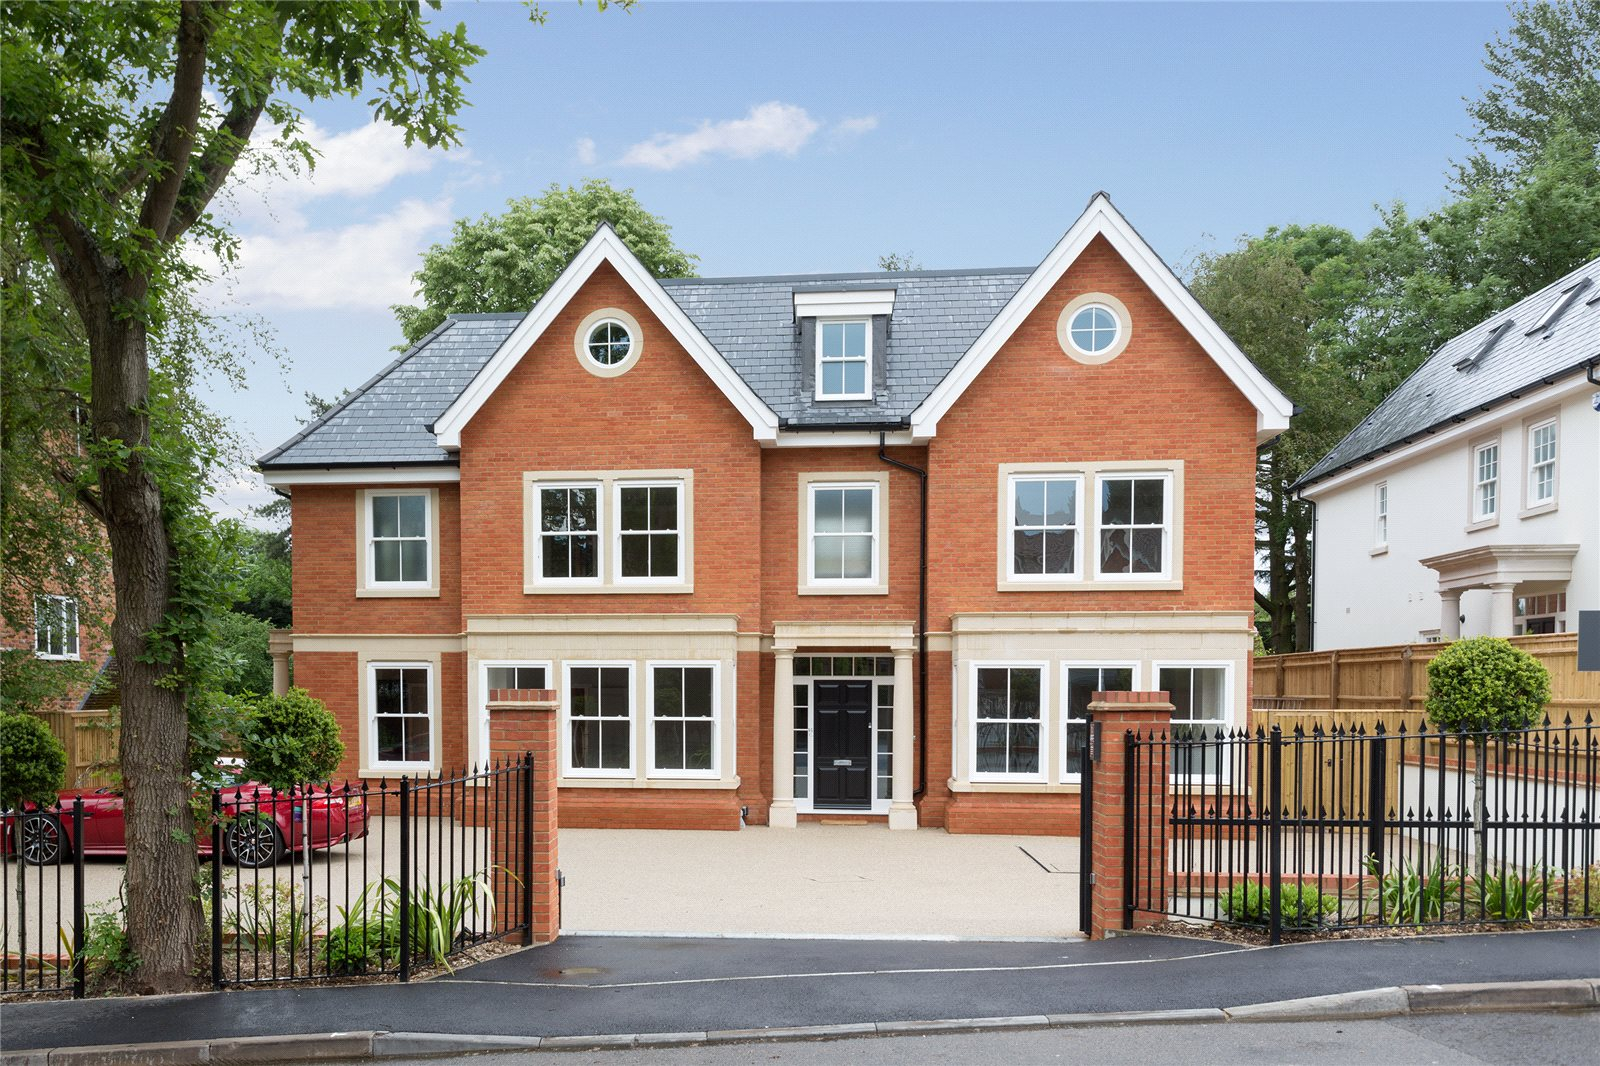 一戸建て のために 売買 アット Refined II, South Park Drive, Gerrards Cross, Buckinghamshire, SL9 Gerrards Cross, イギリス